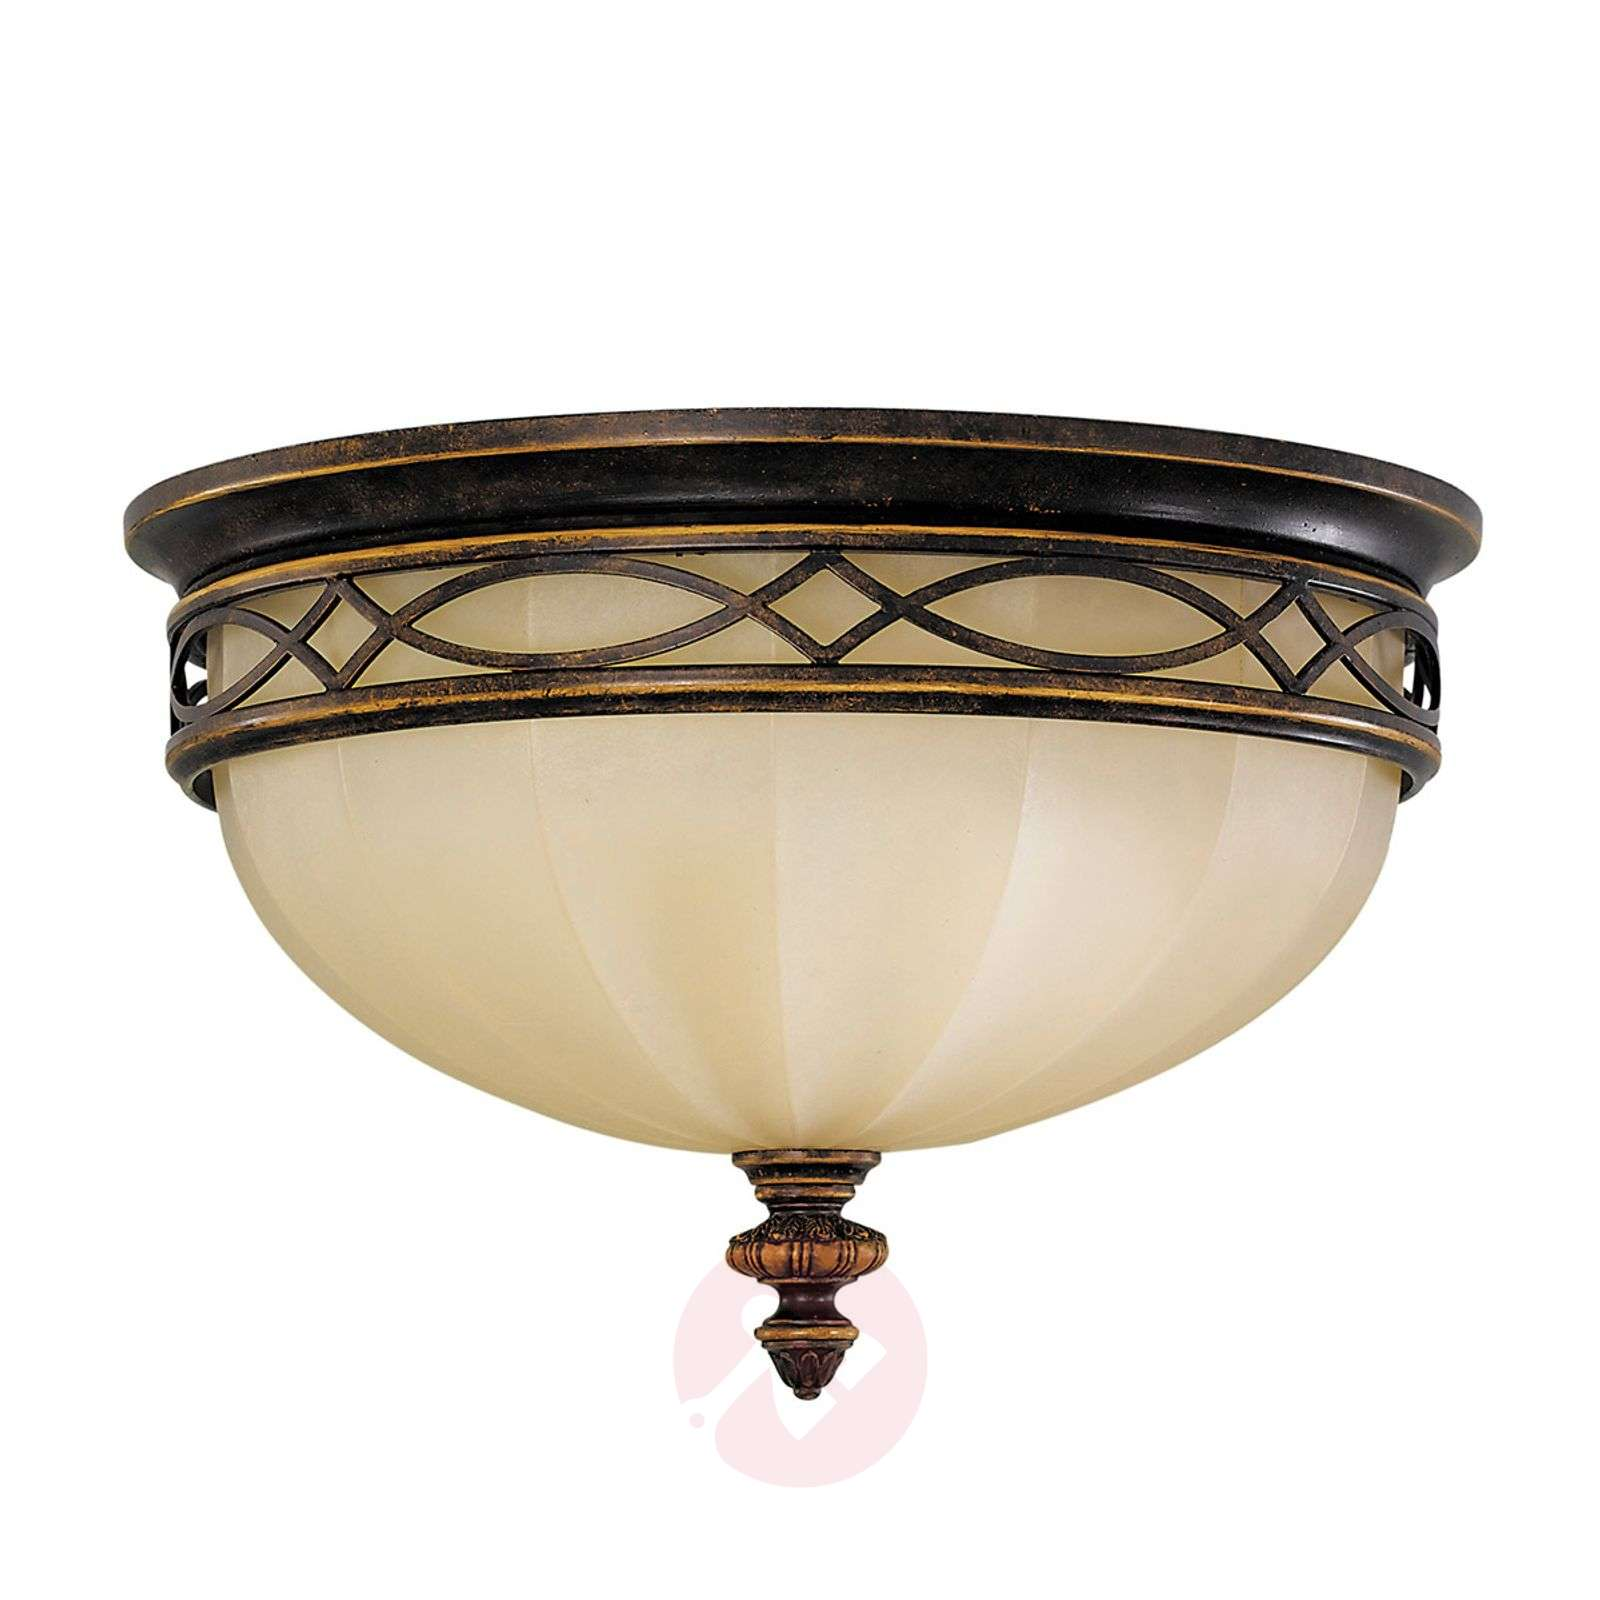 Drawing Room Ceiling Light with Scavo Glass-3048239-02